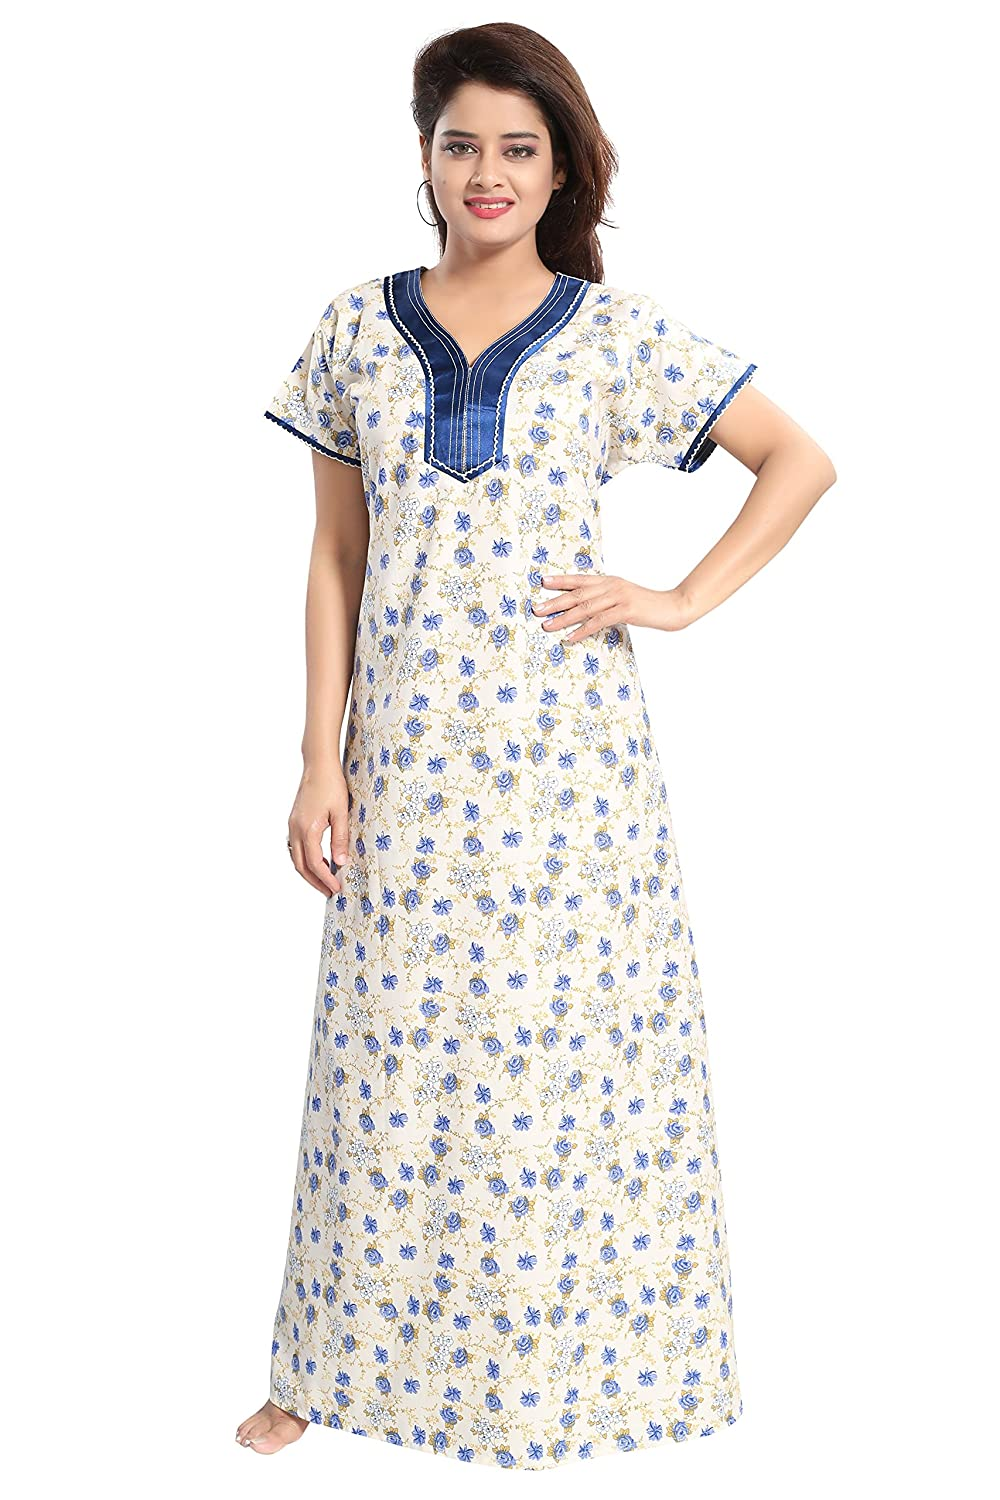 4168482924 TUCUTE Womens Premium Cotton Fabric Nighty Night Gown Nightwear Nightdress  with Small Floral Print.  Amazon.in  Clothing   Accessories